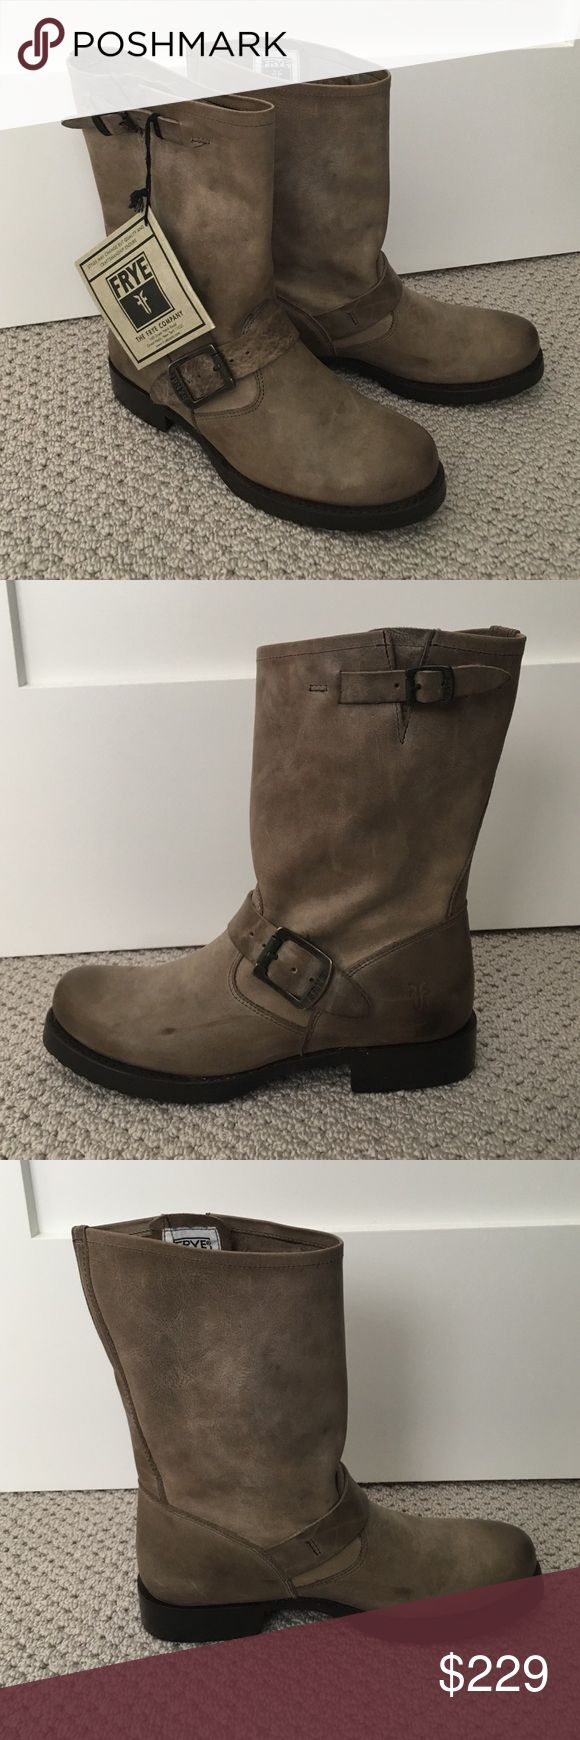 Frye Veronica short boot New Frye Veronica short boot in Slate. Mid-calf leather boots. Frye Shoes Ankle Boots & Booties